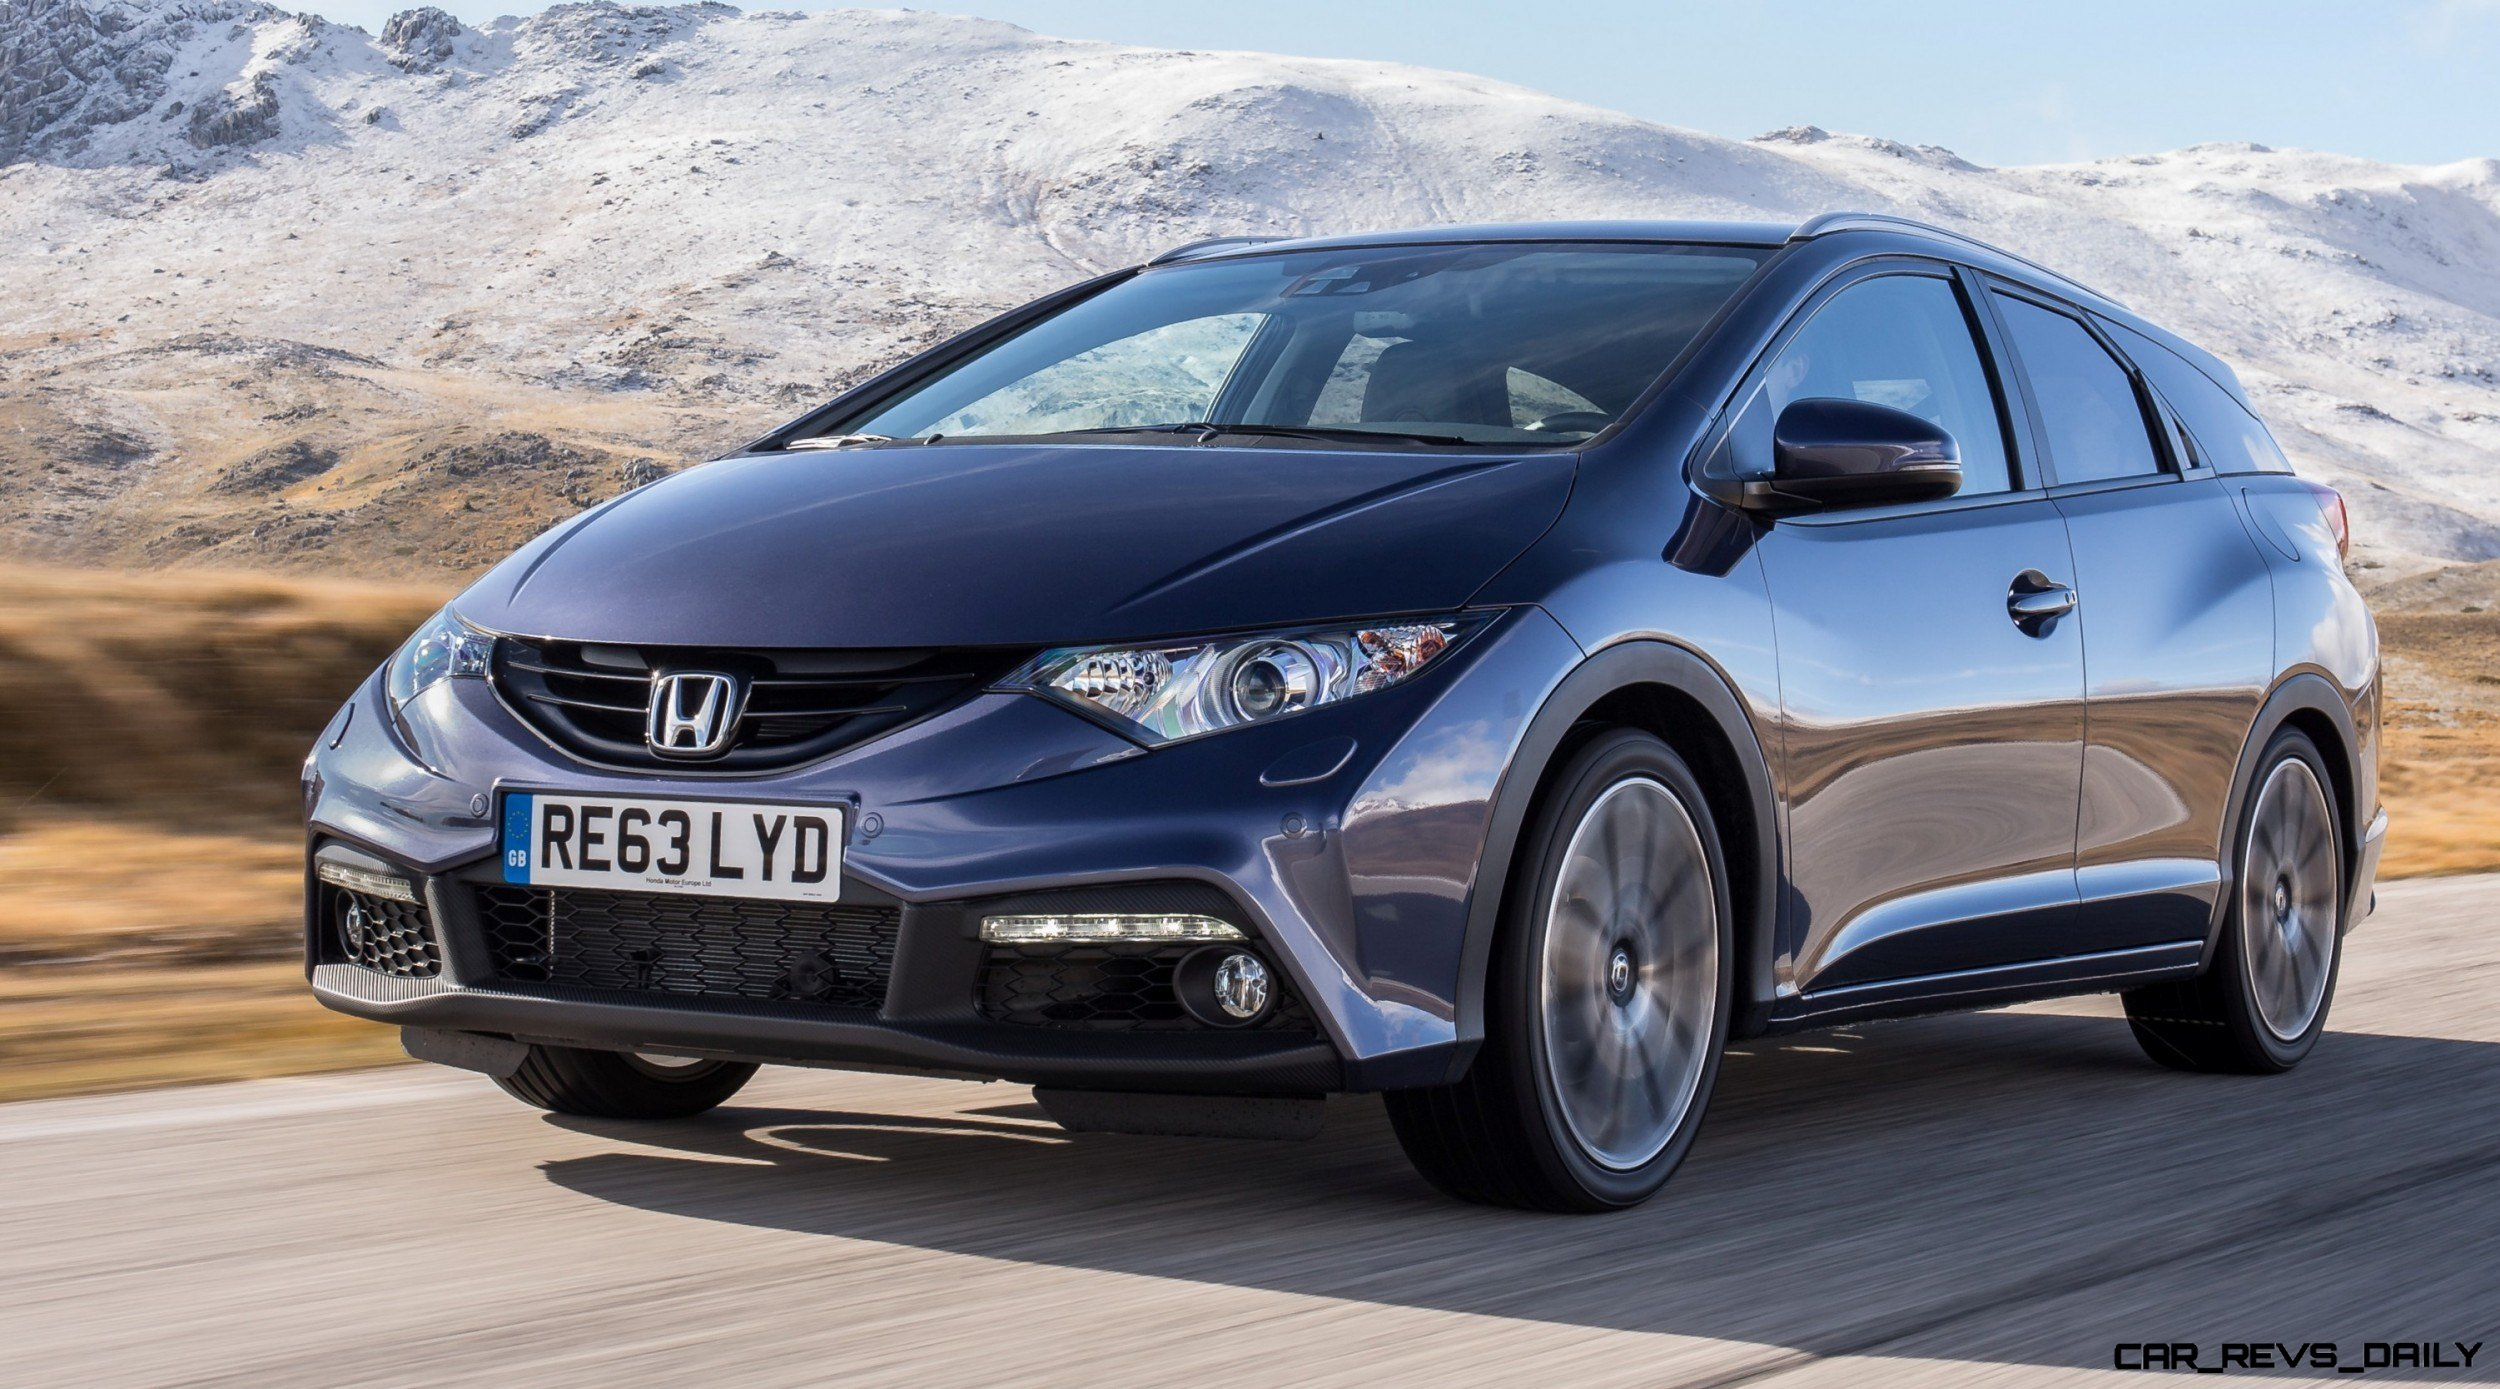 UK Honda Civic Tourer Touts Inner Beauty But This Wagon Is Gorgeous Vs